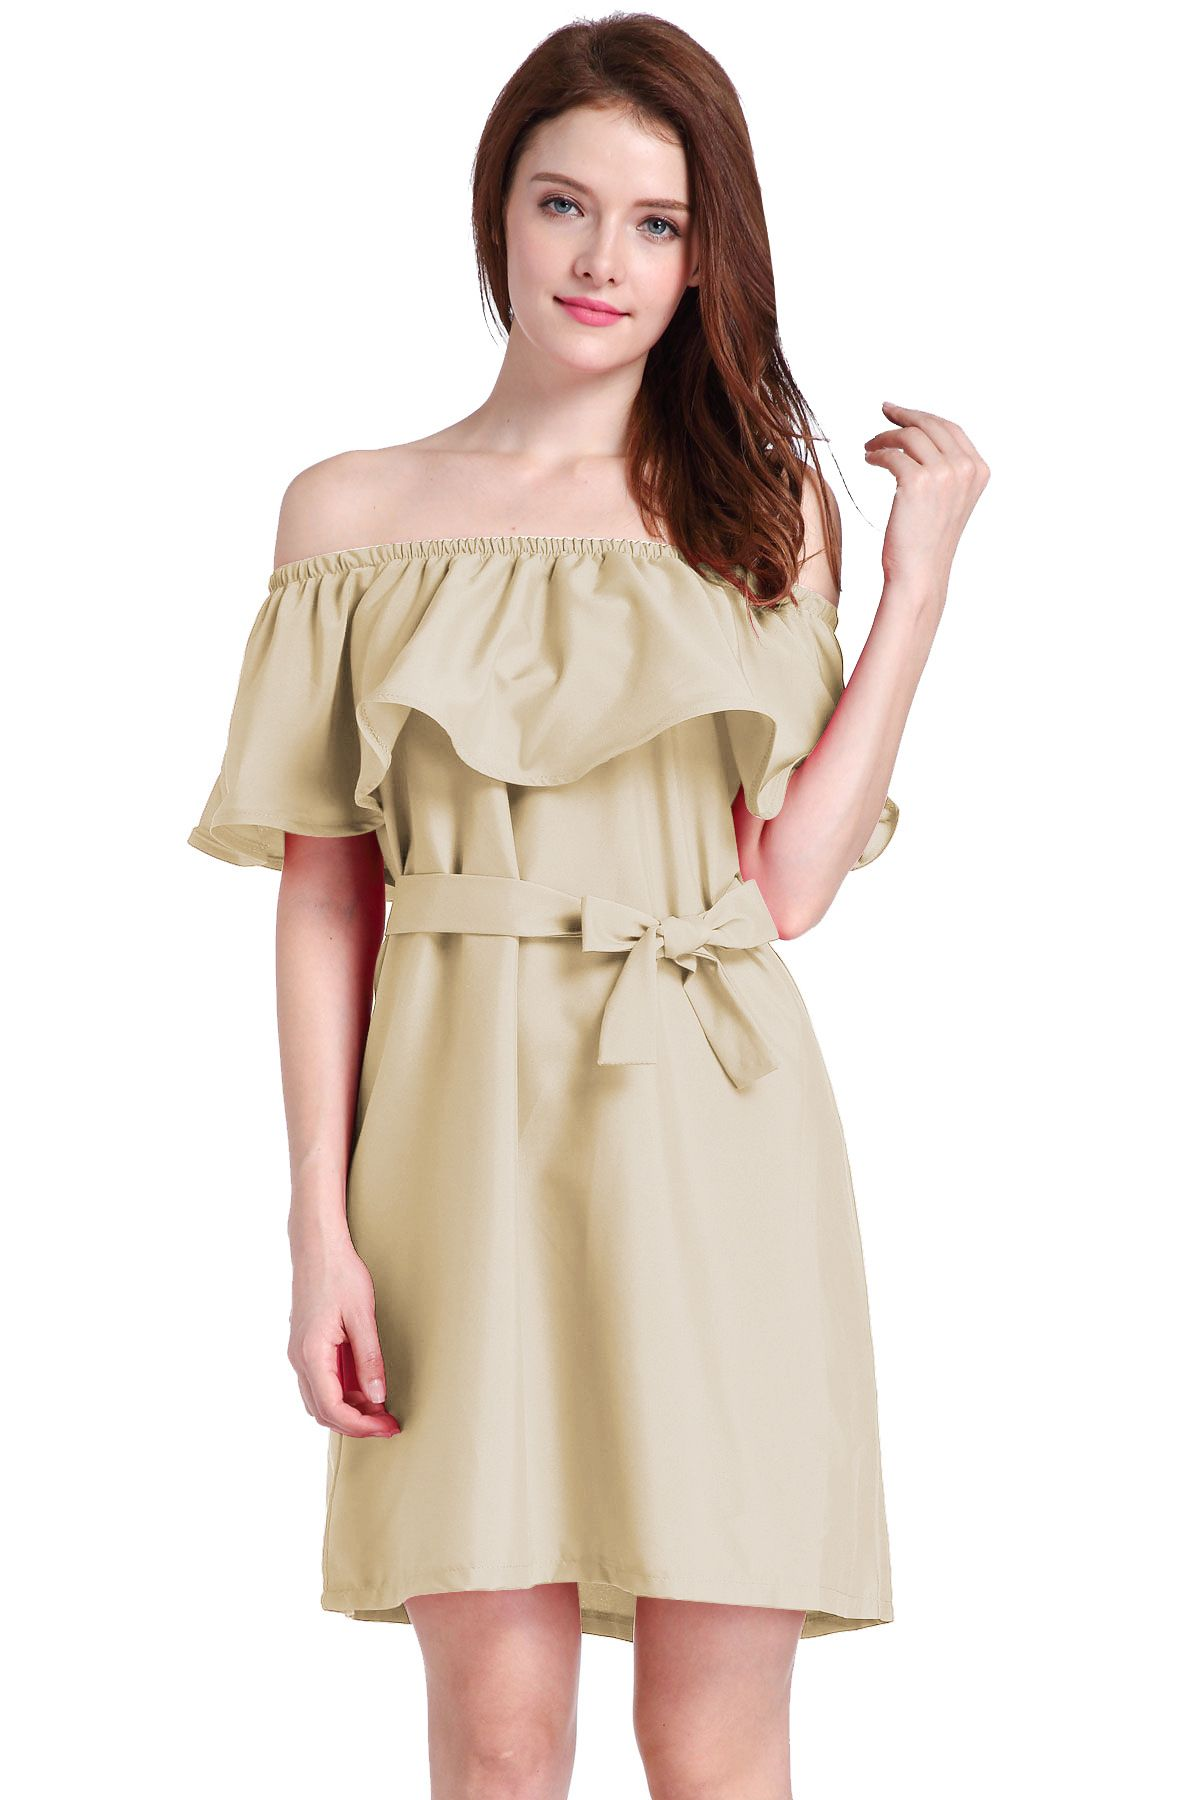 aa705133e95d Ruffled Off-The-Shoulder Short Shift Dress Featuring Bow Accent ...